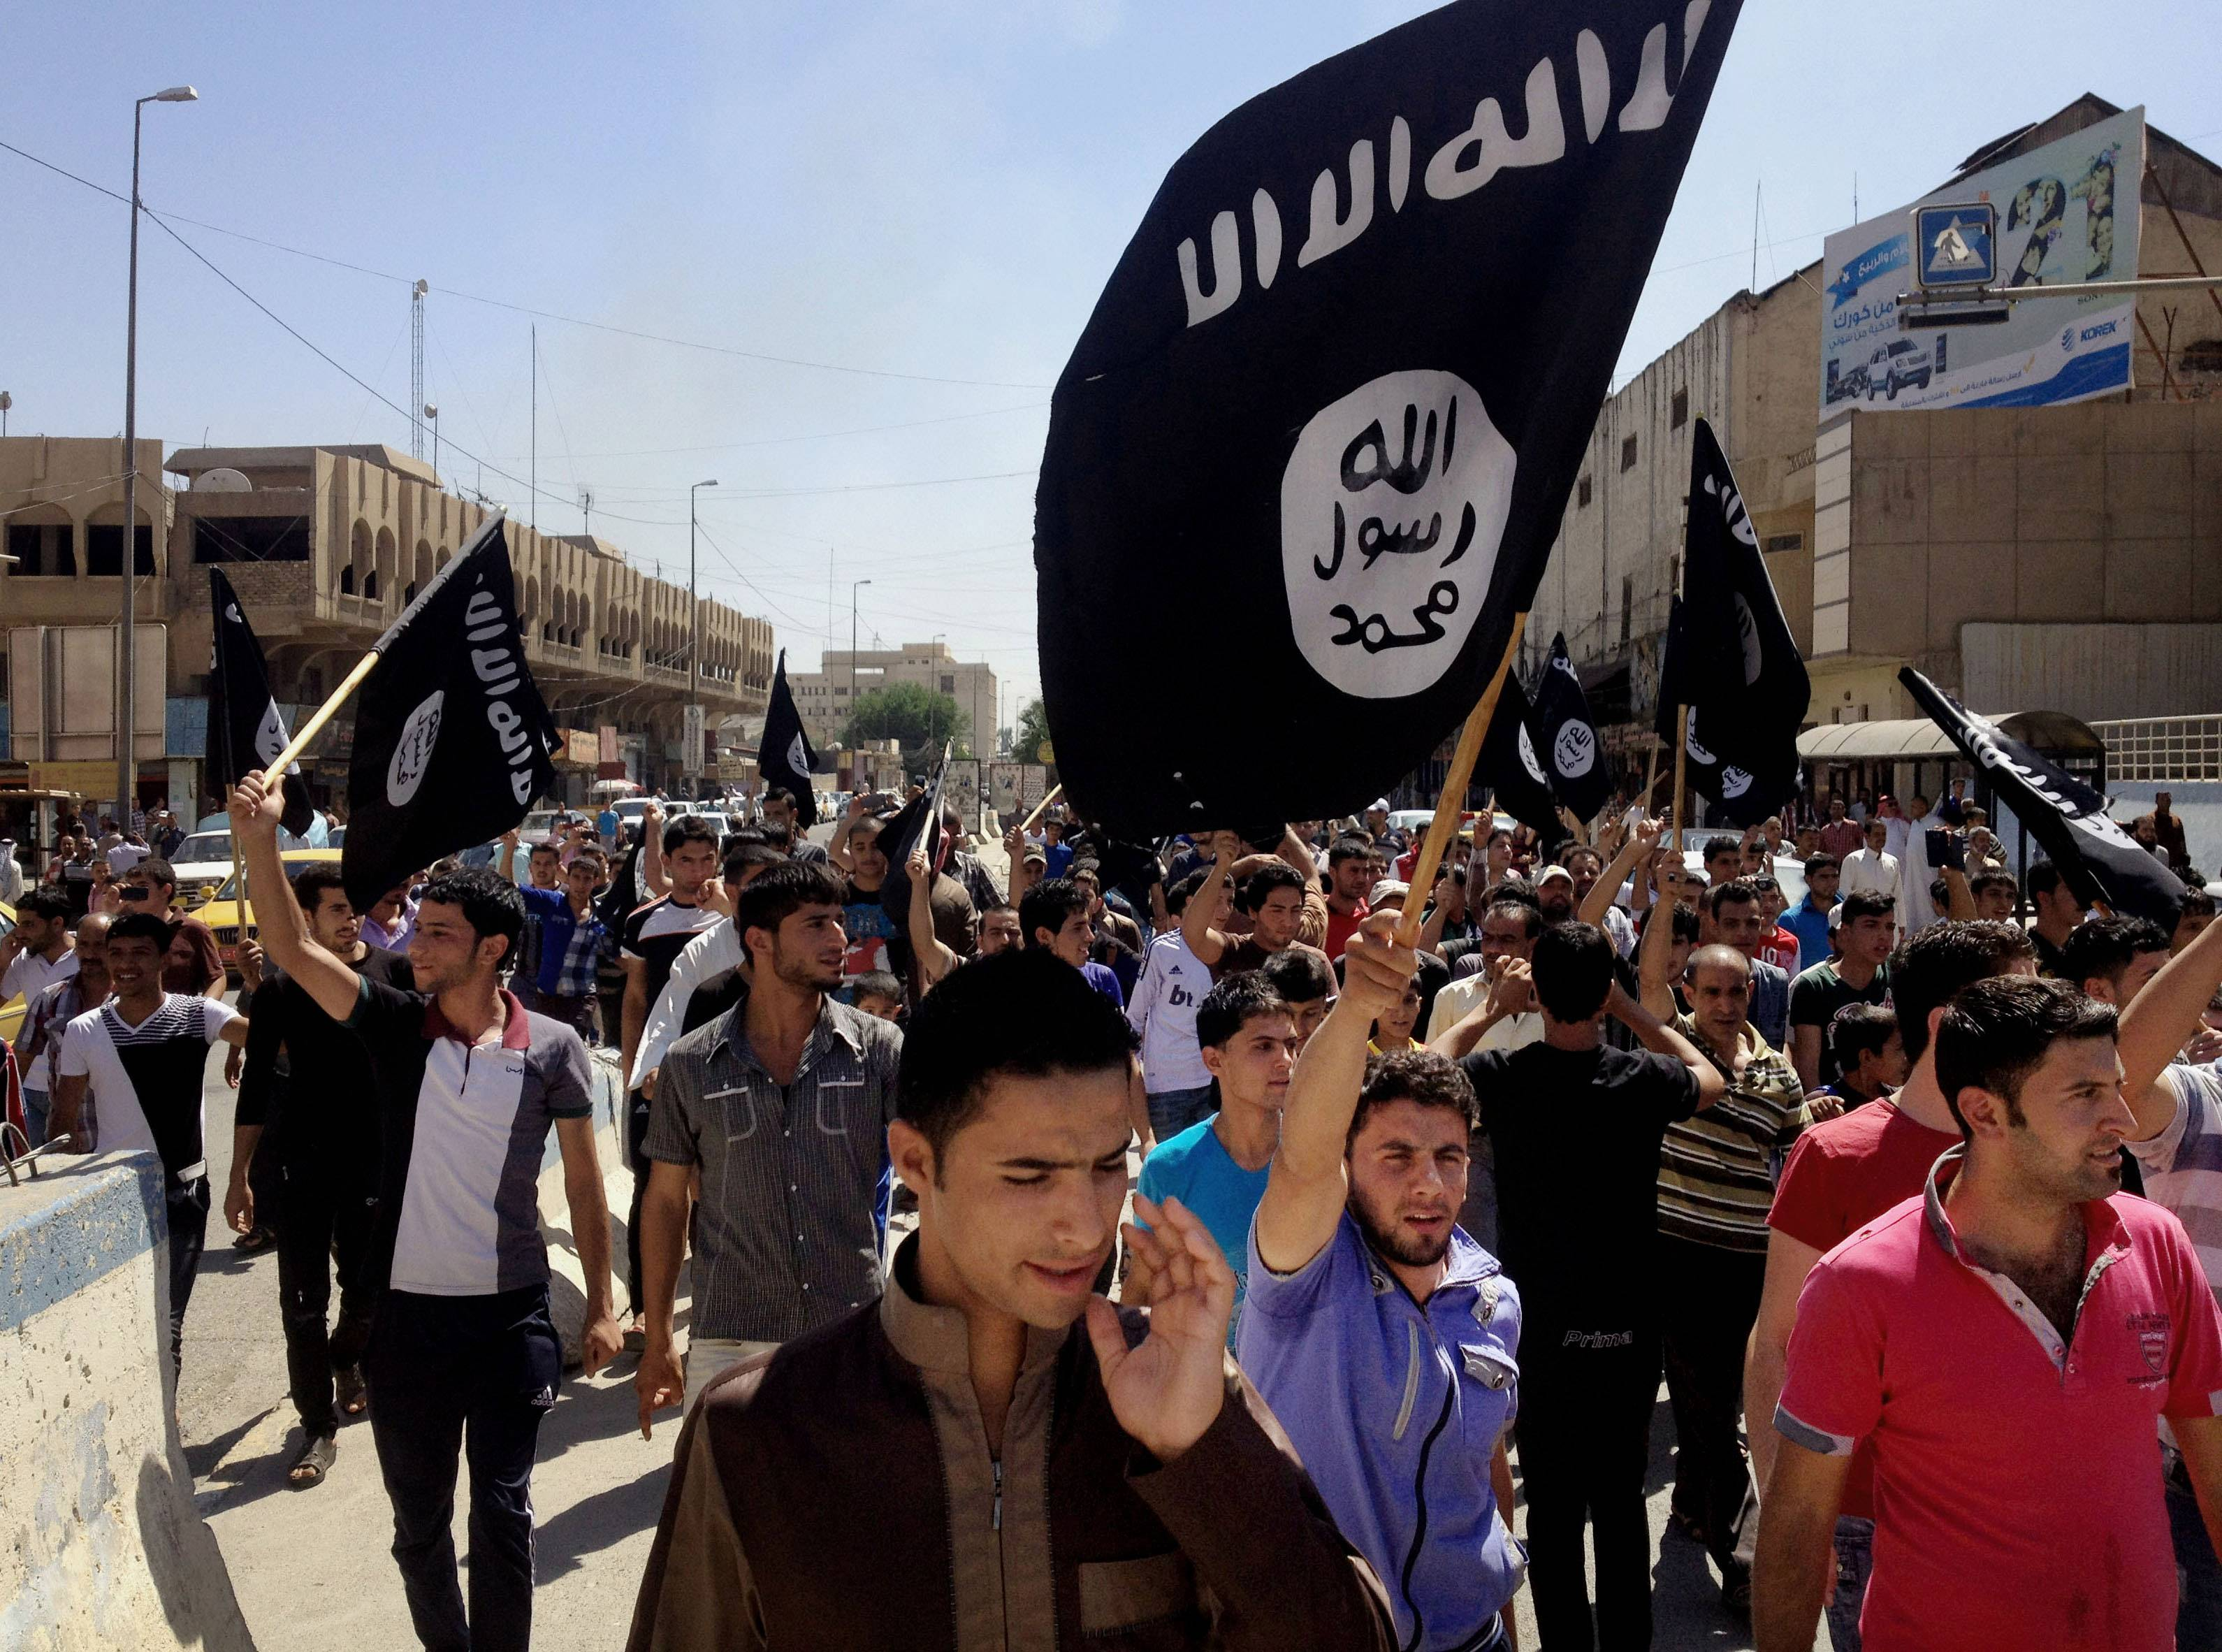 Demonstrators chant slogans to support al-Qaida-inspired Islamic State of Iraq and the Levant as they carry al-Qaida flags in front of the provincial government headquarters in Mosul, 225 miles northwest of Baghdad, Iraq, in this June 16, 2014, file photo.